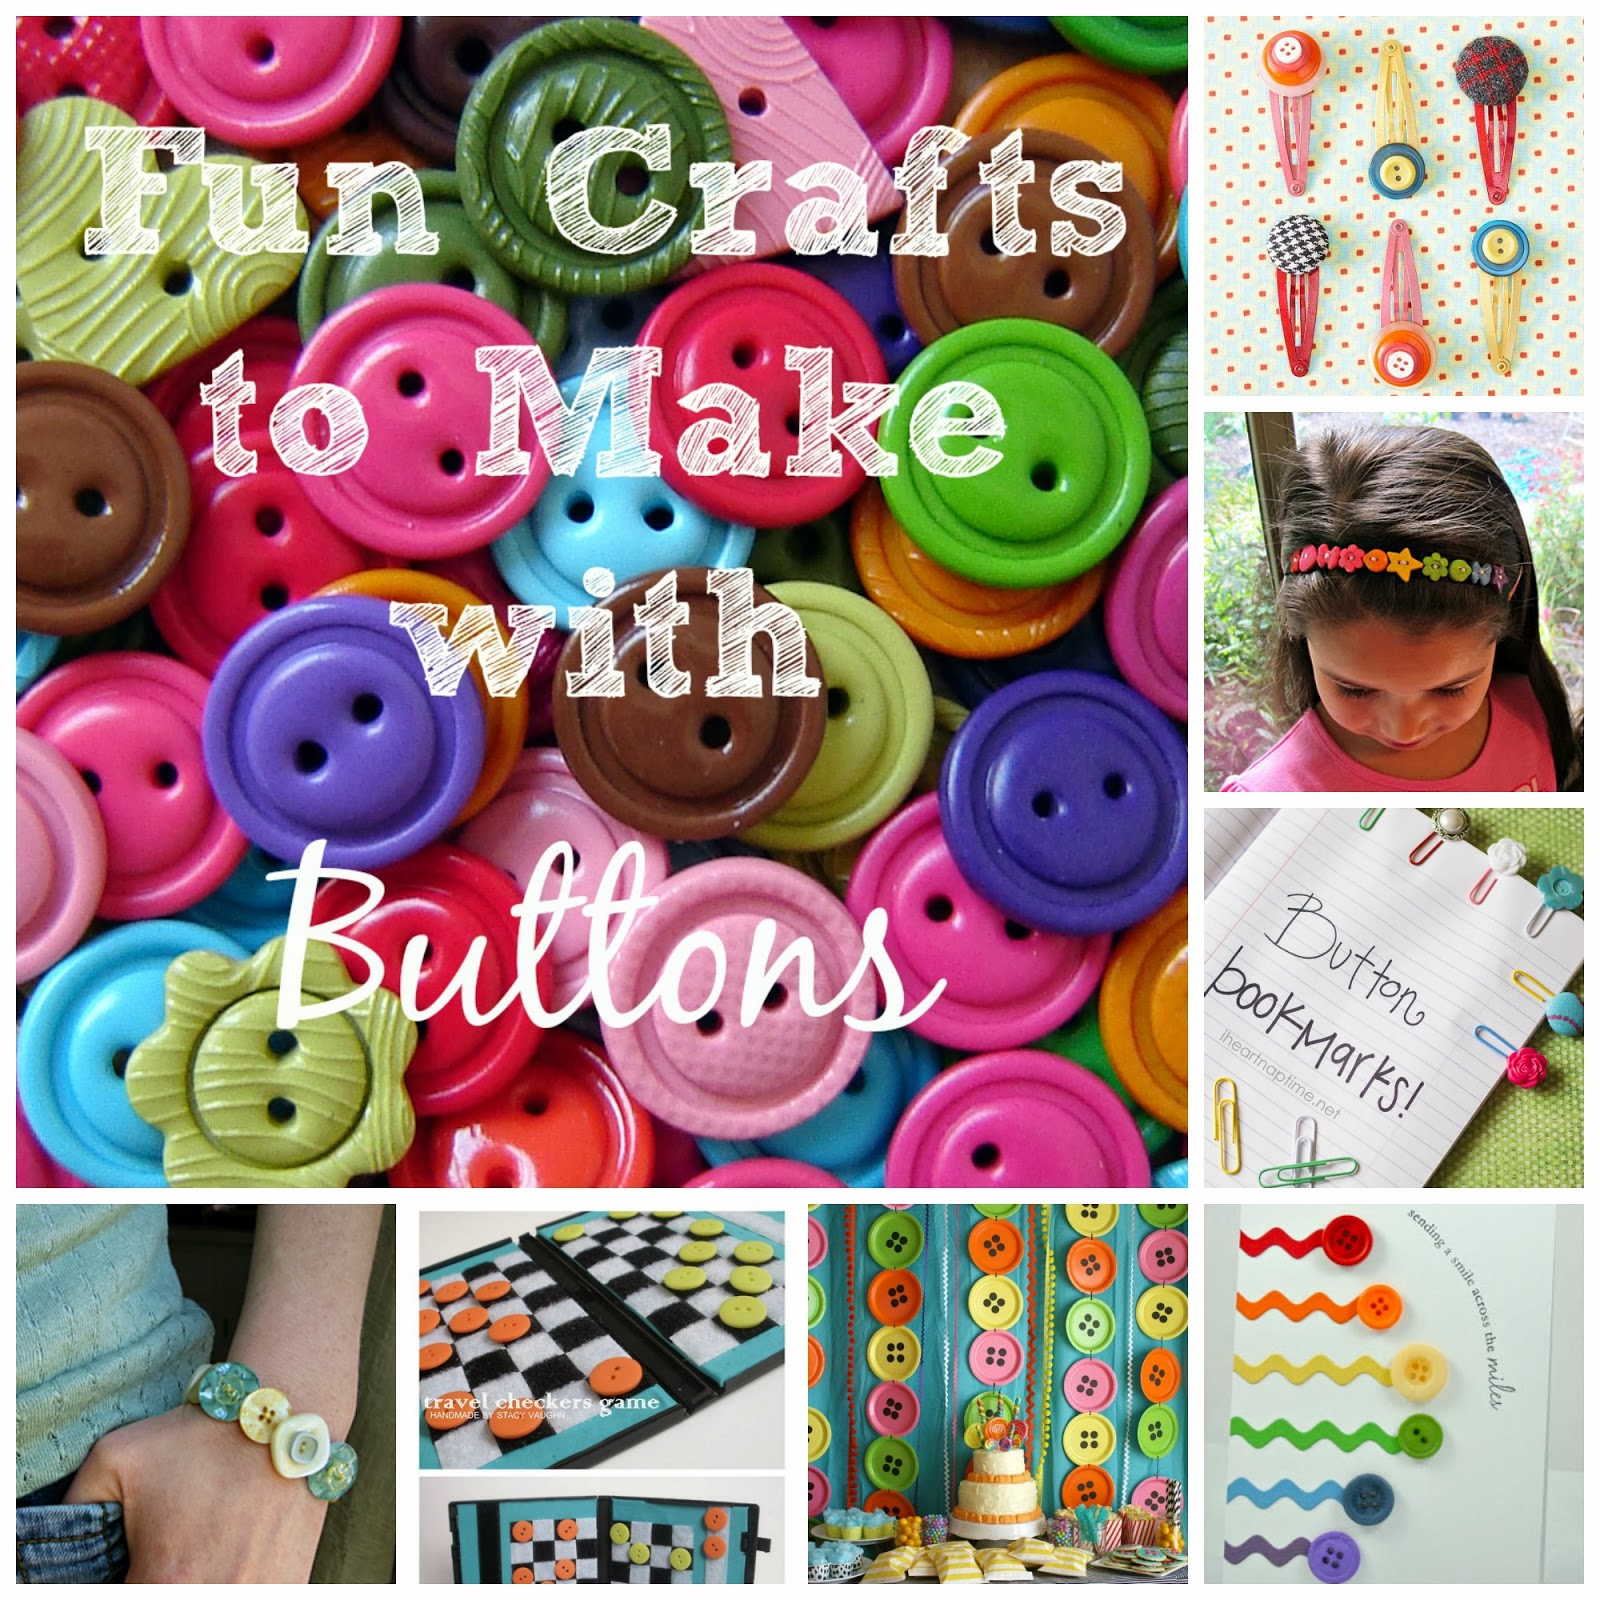 Some Of The Best Things In Life Are Mistakes Fun Crafts To Make